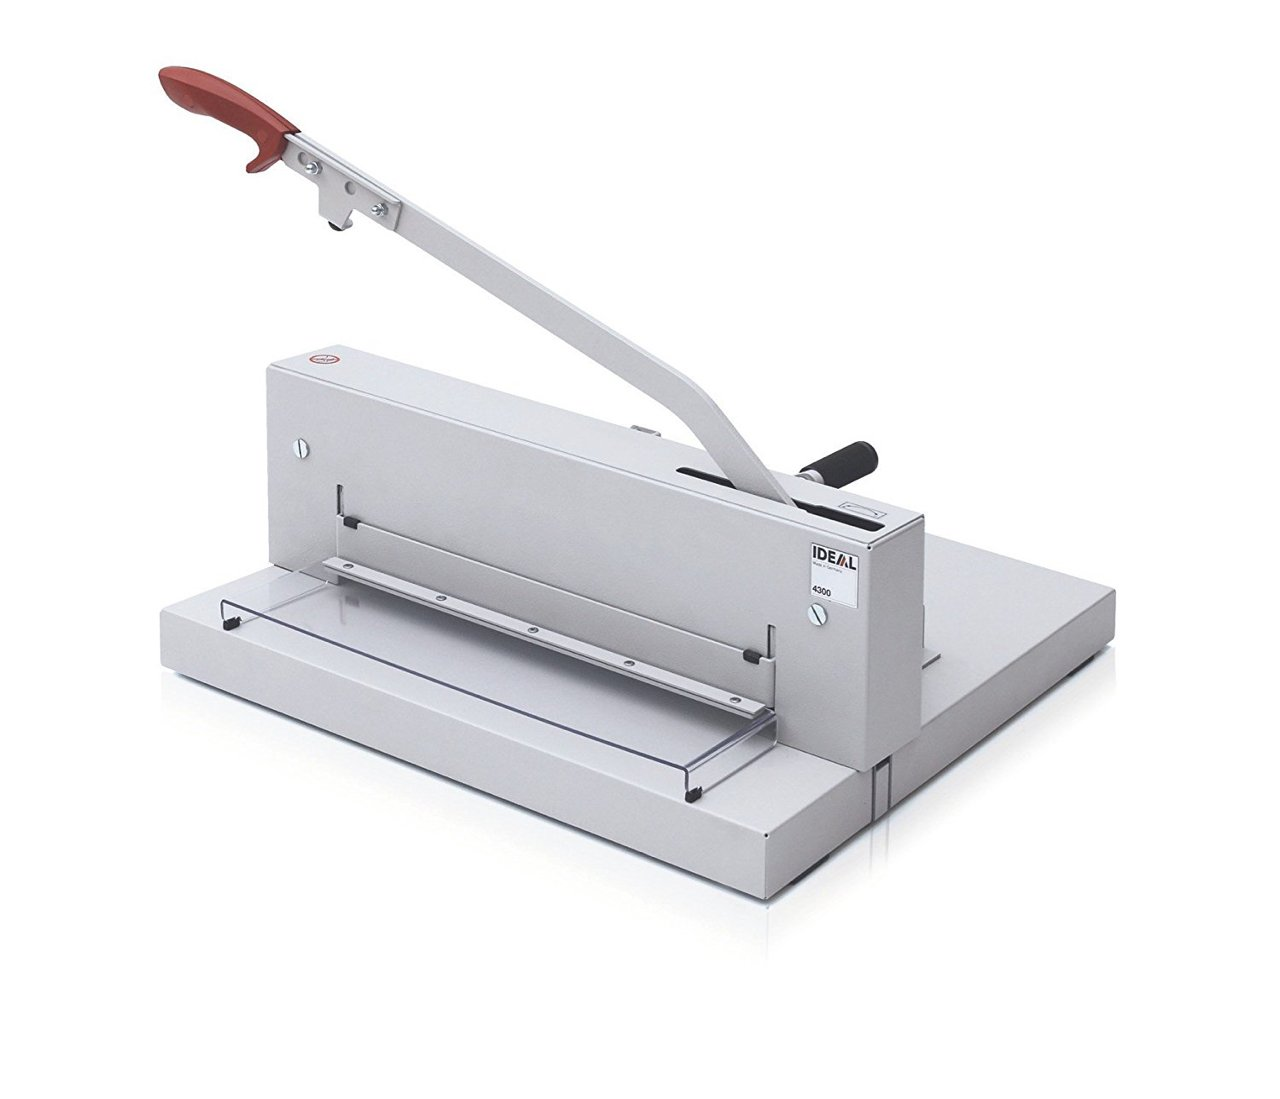 MBM TRIUMPH 4300 MANUAL TABLETOP PAPER CUTTER WITH FAST-ACTION CLAMP AND  SCS SAFETY FEATURE